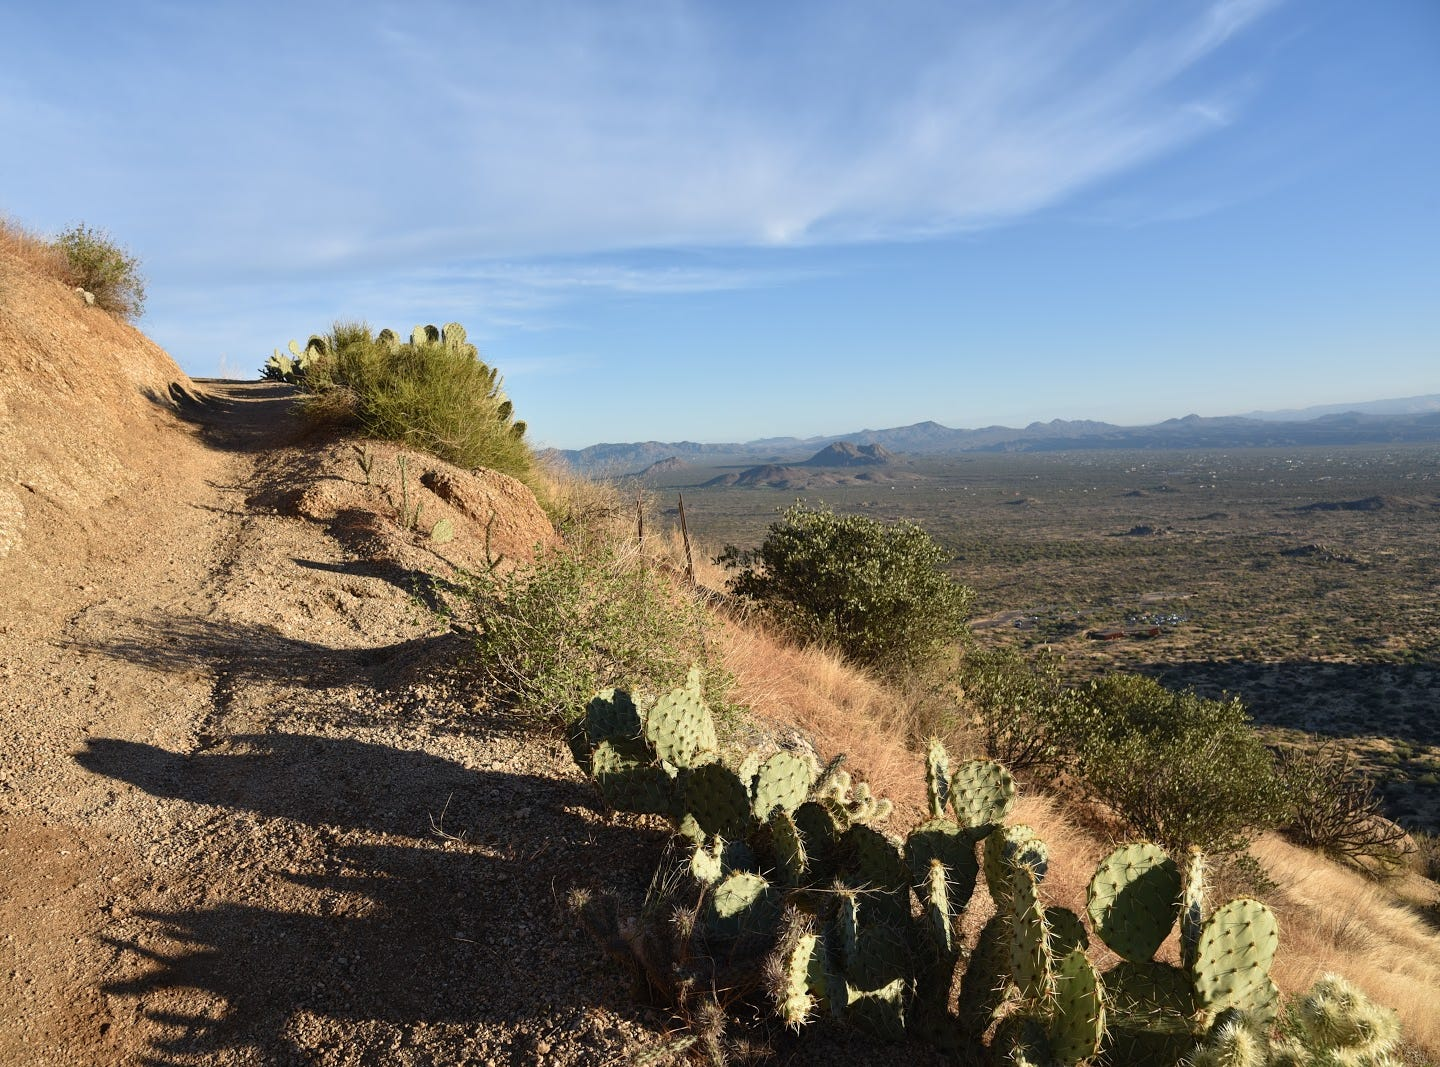 The Tom's Thumb trail ascends more than 1,300 feet on a gravelly surface.